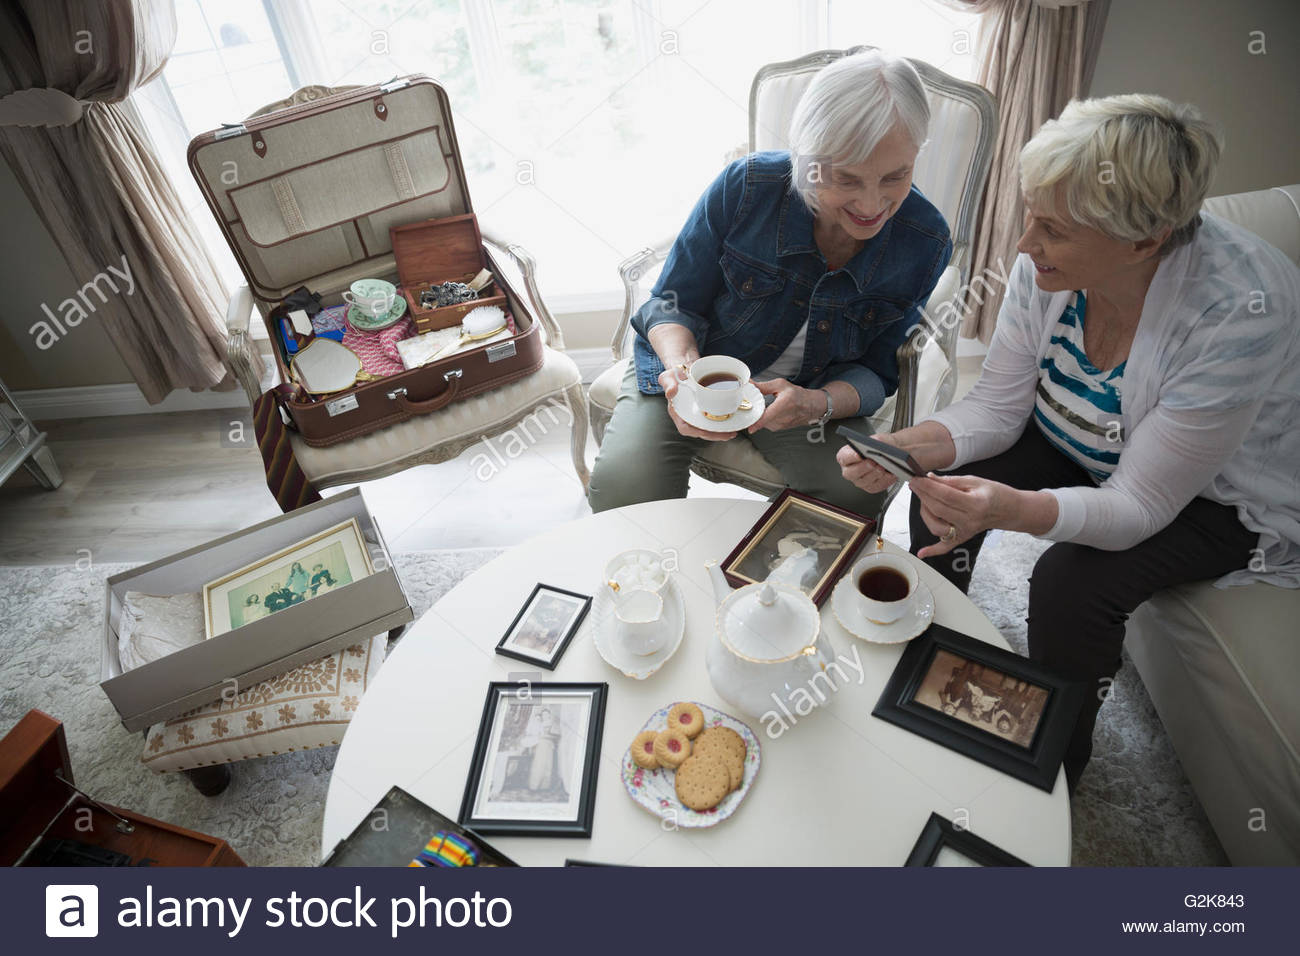 Senior women drinking tea and looking at old photographs - Stock Image